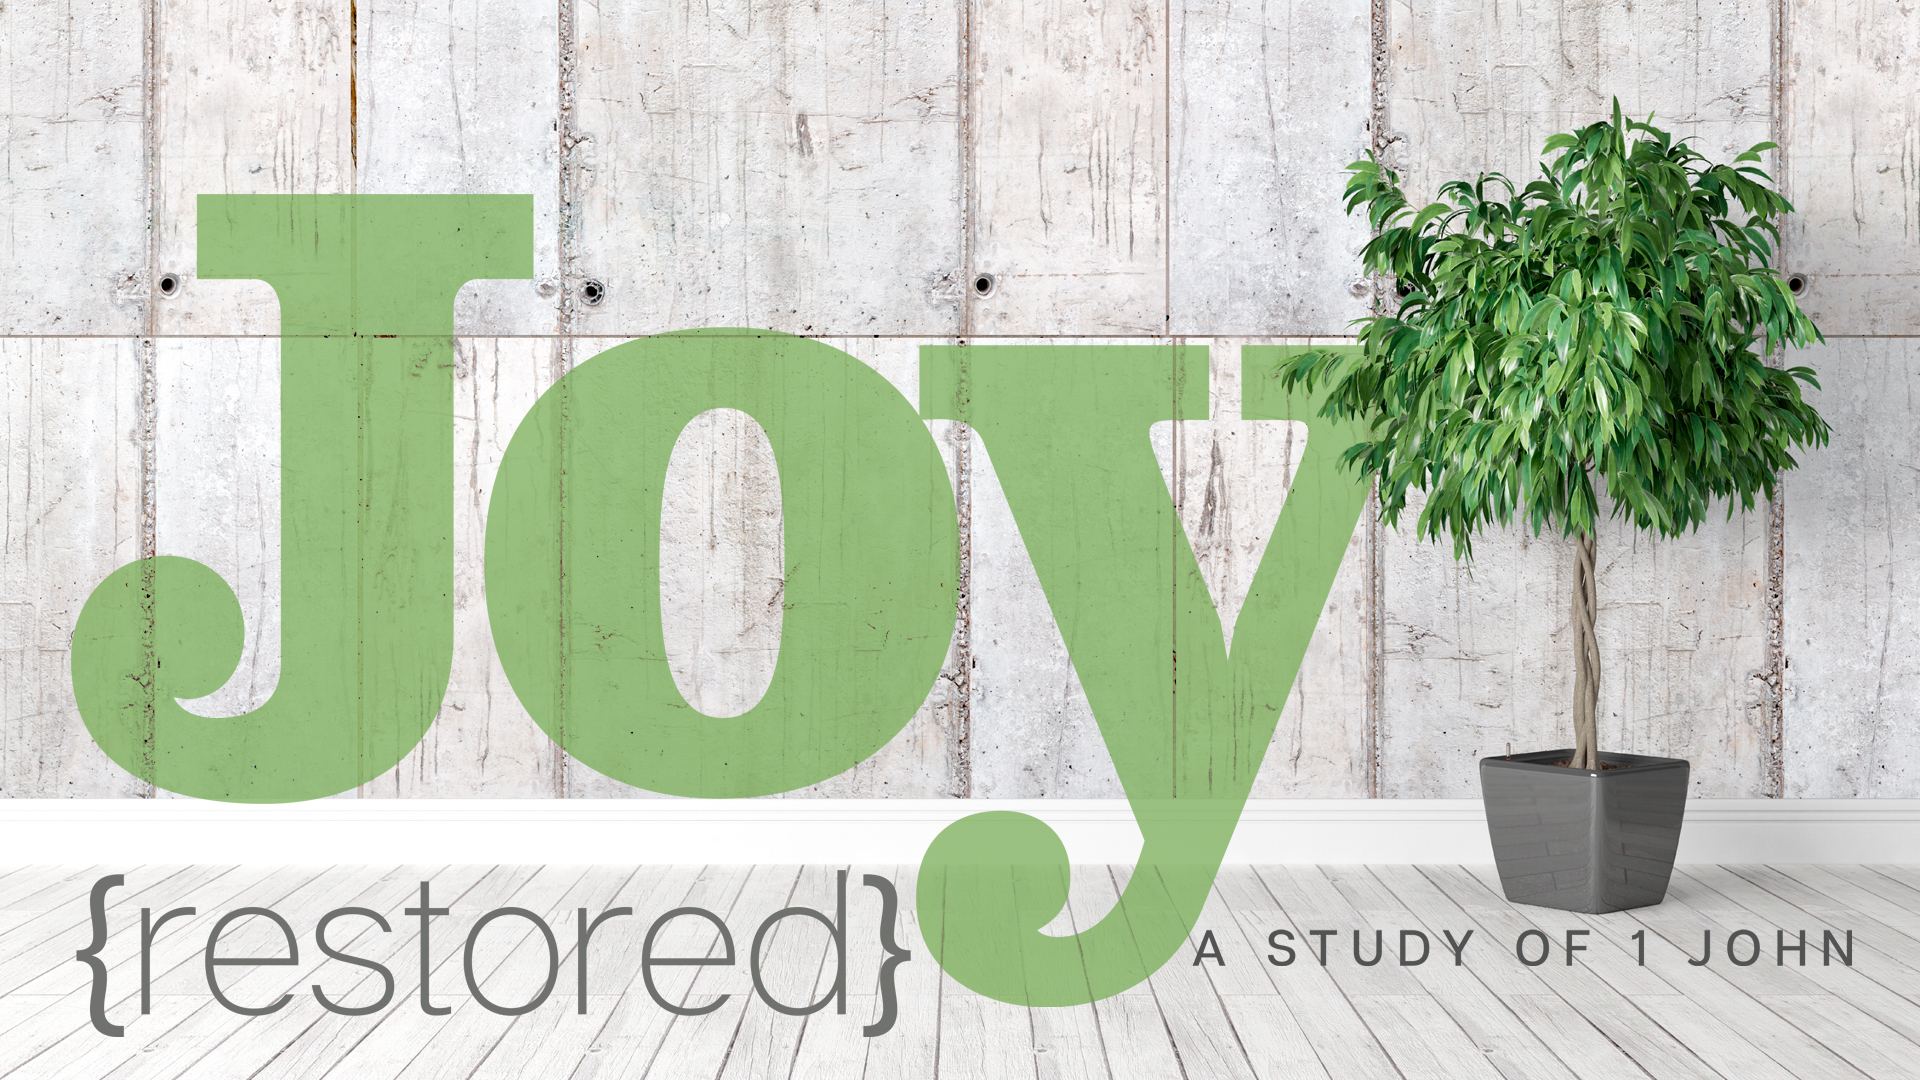 Joy Restored Through Confession